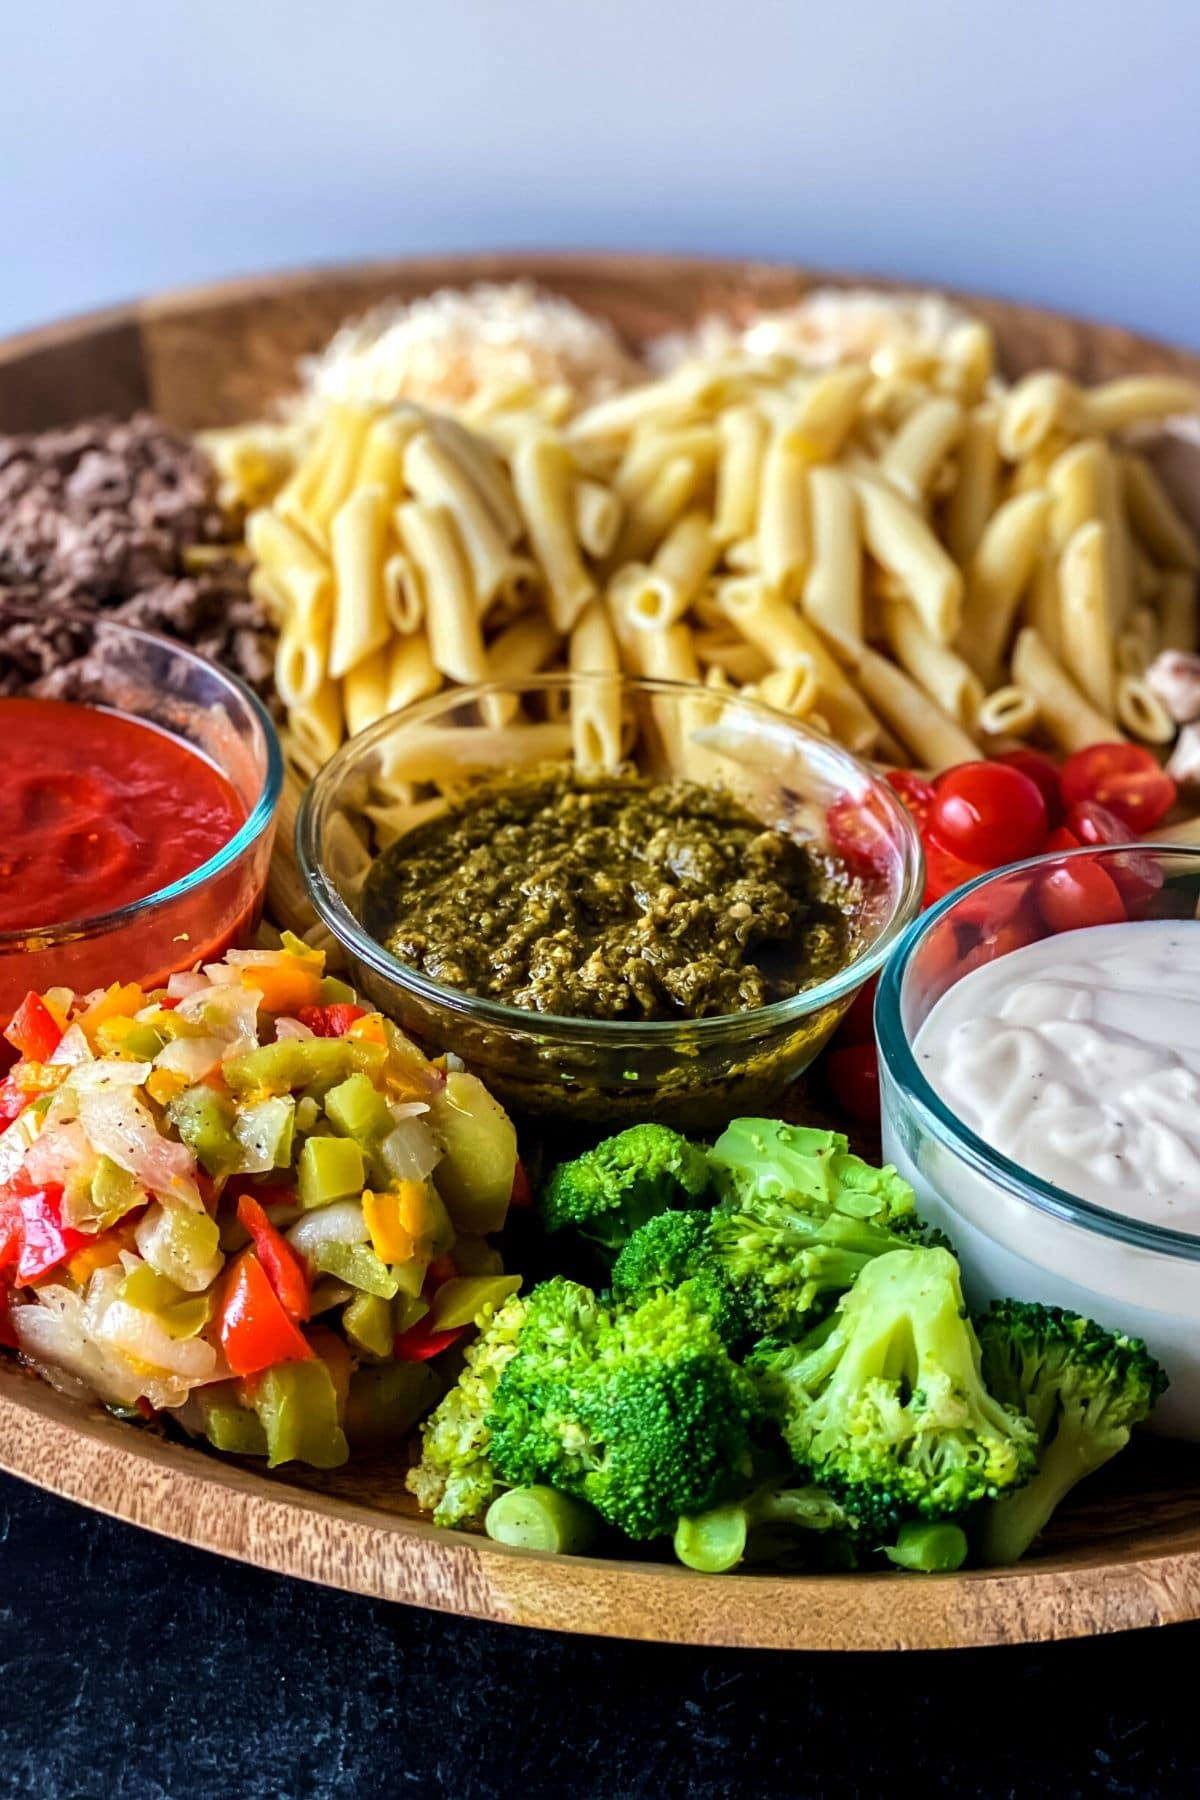 Charcuterie pasta board with veggies and broccoli